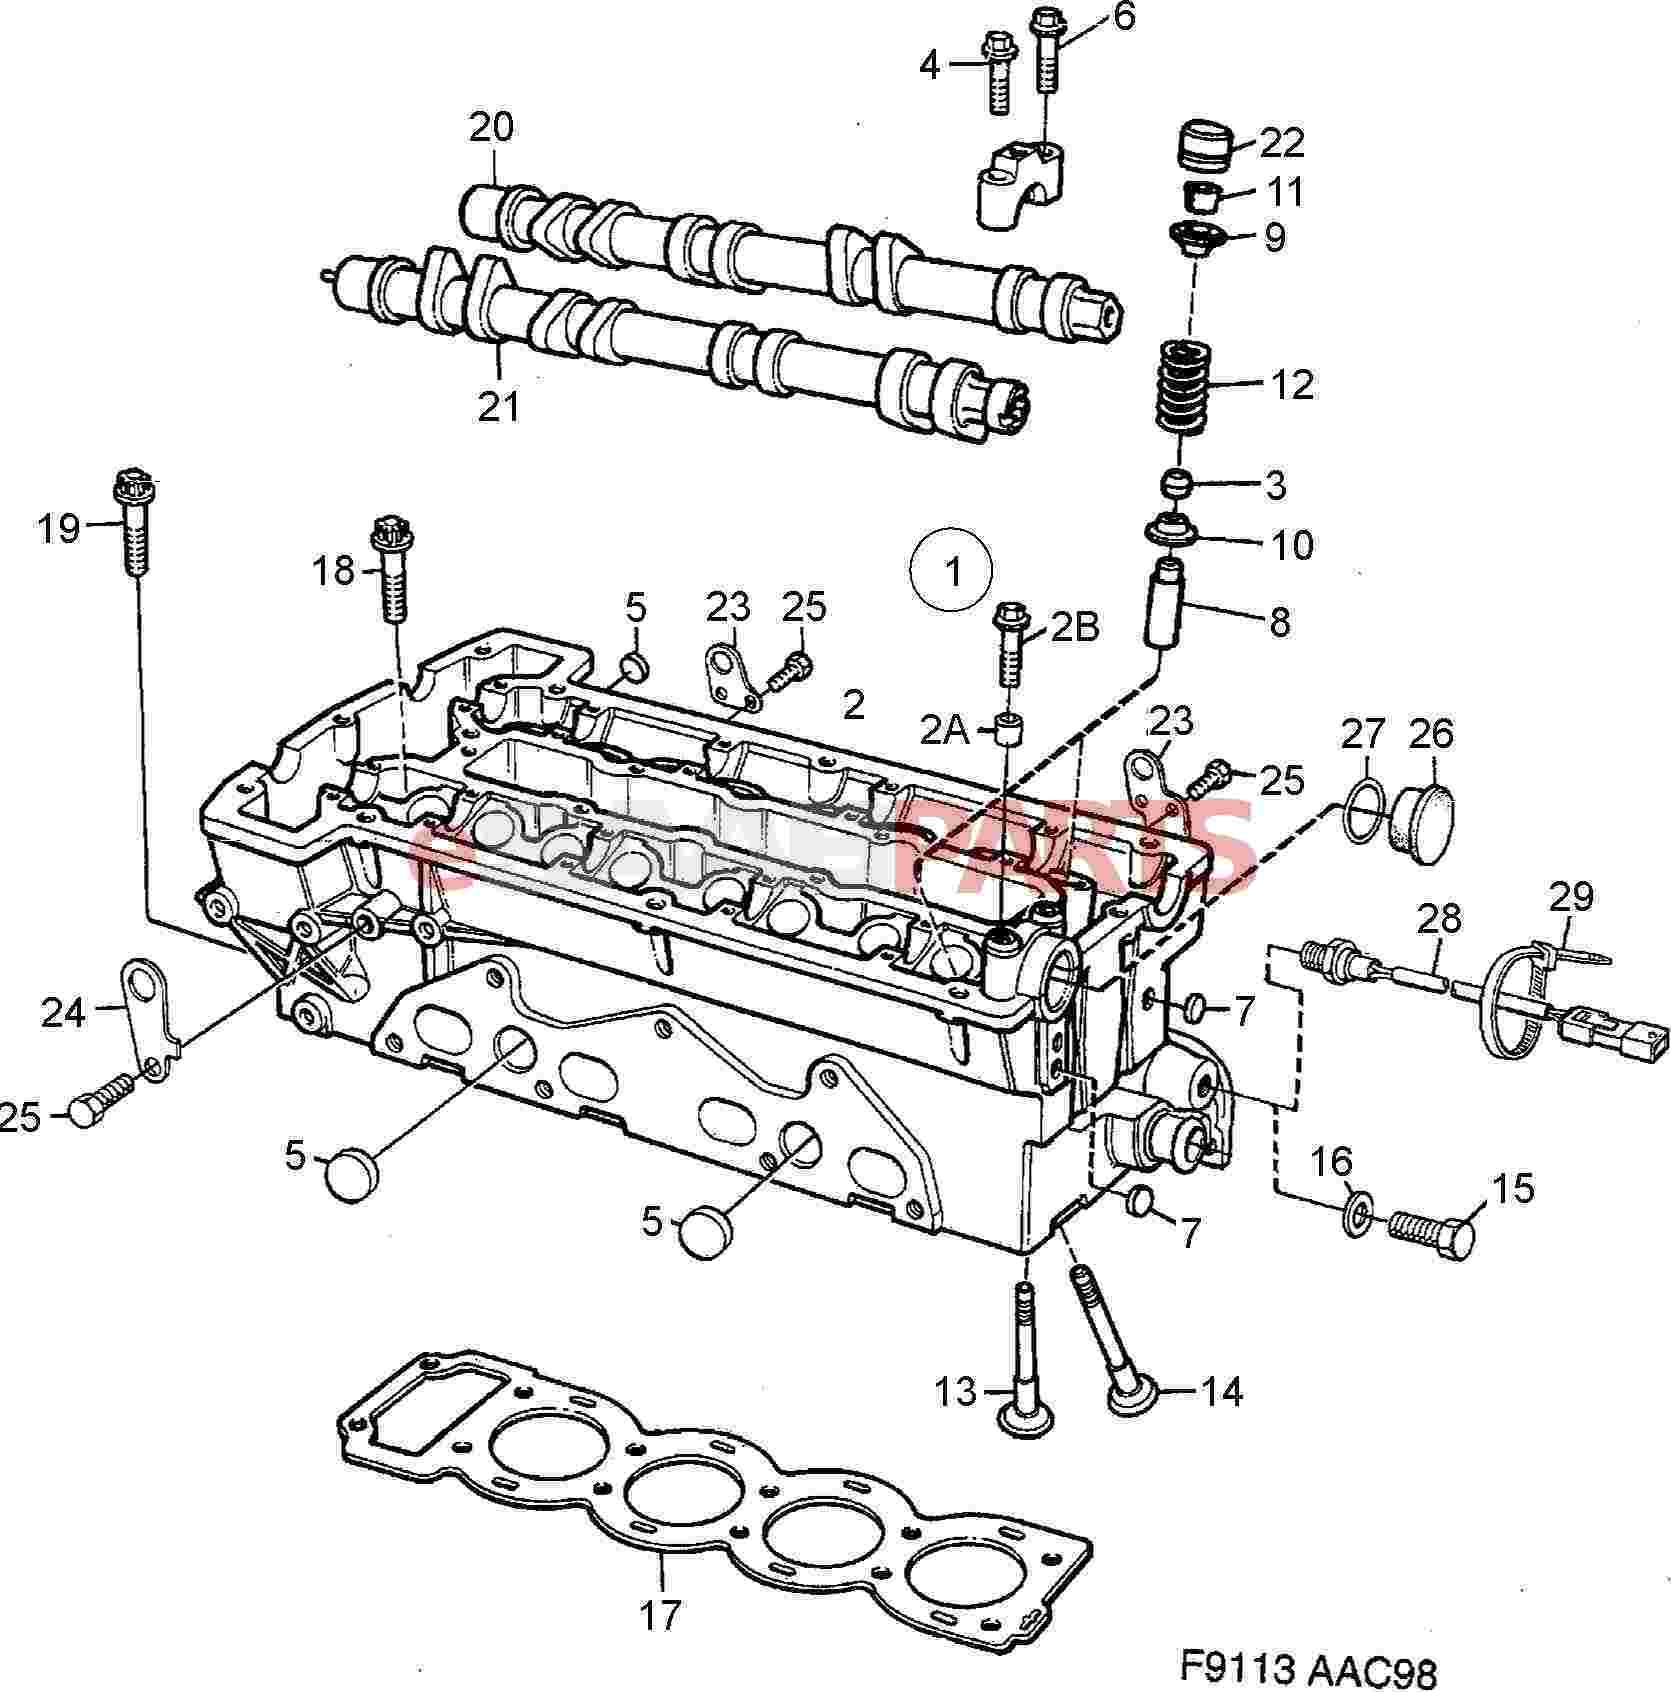 97 audi a4 fuse box location  audi  auto fuse box diagram